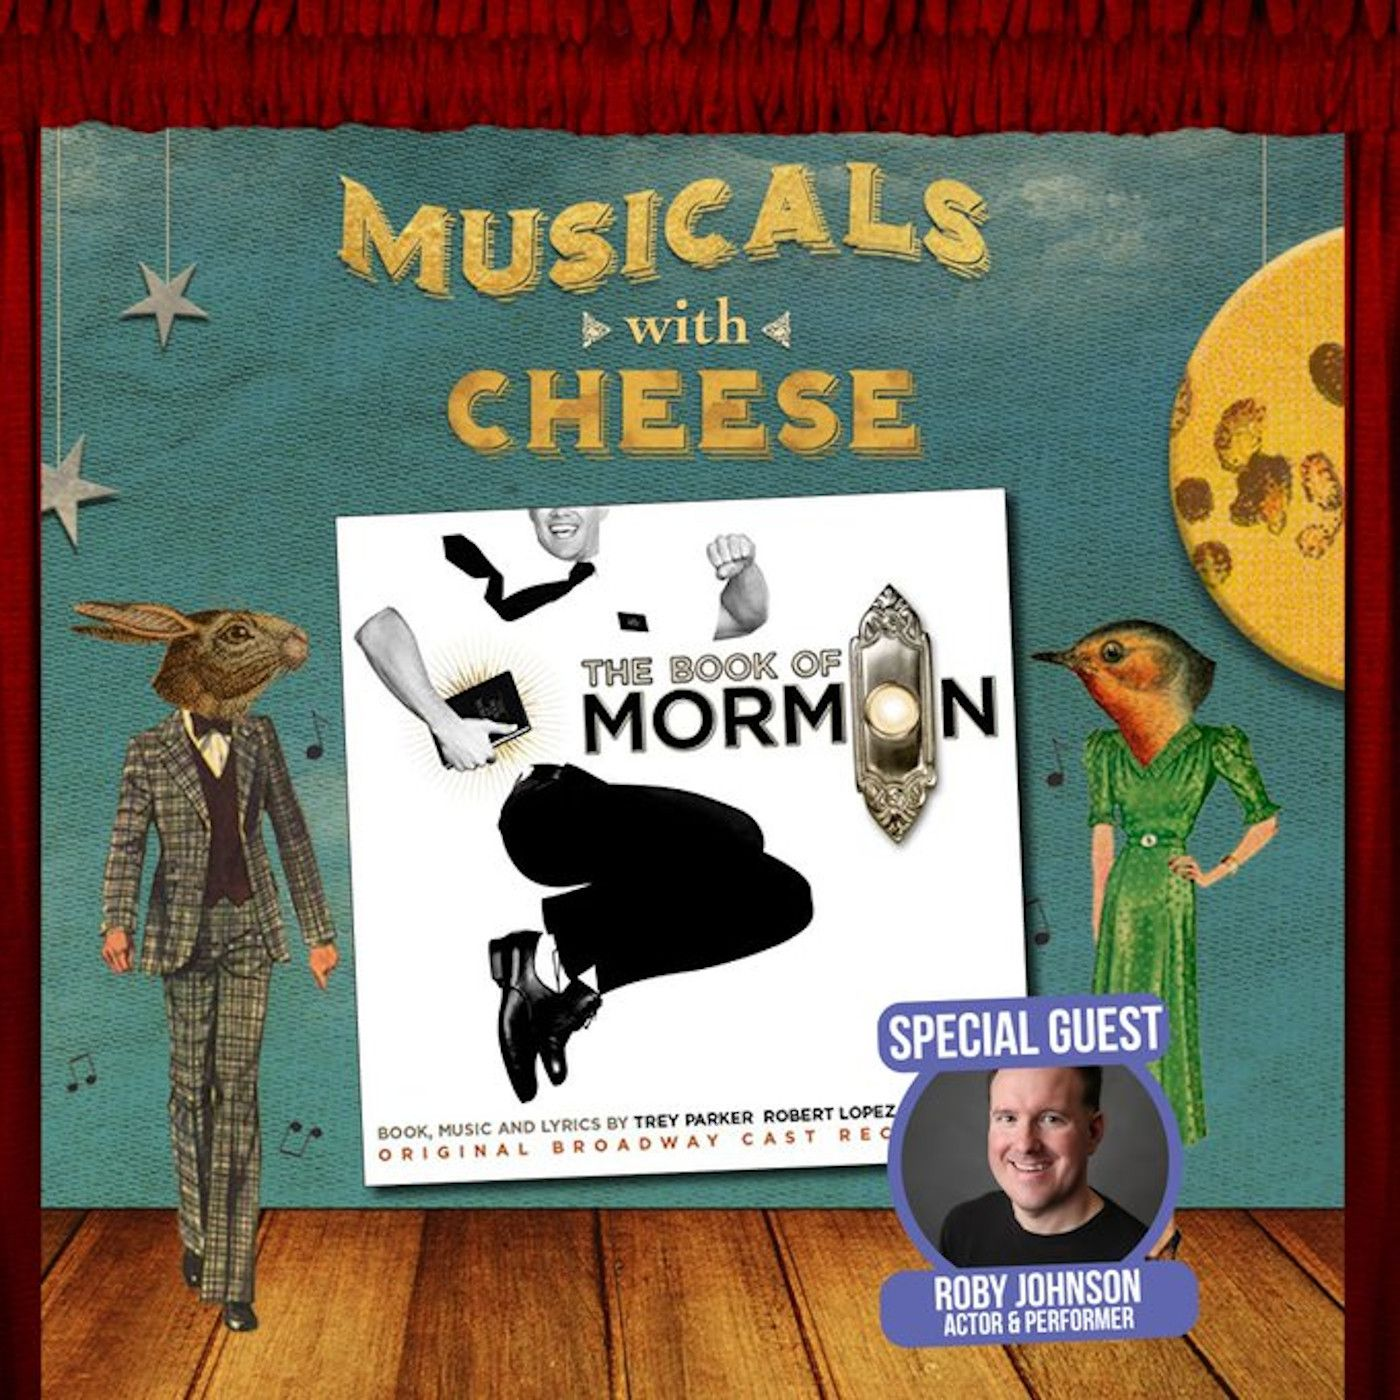 Musicals With Cheese #53: The Book of Mormon